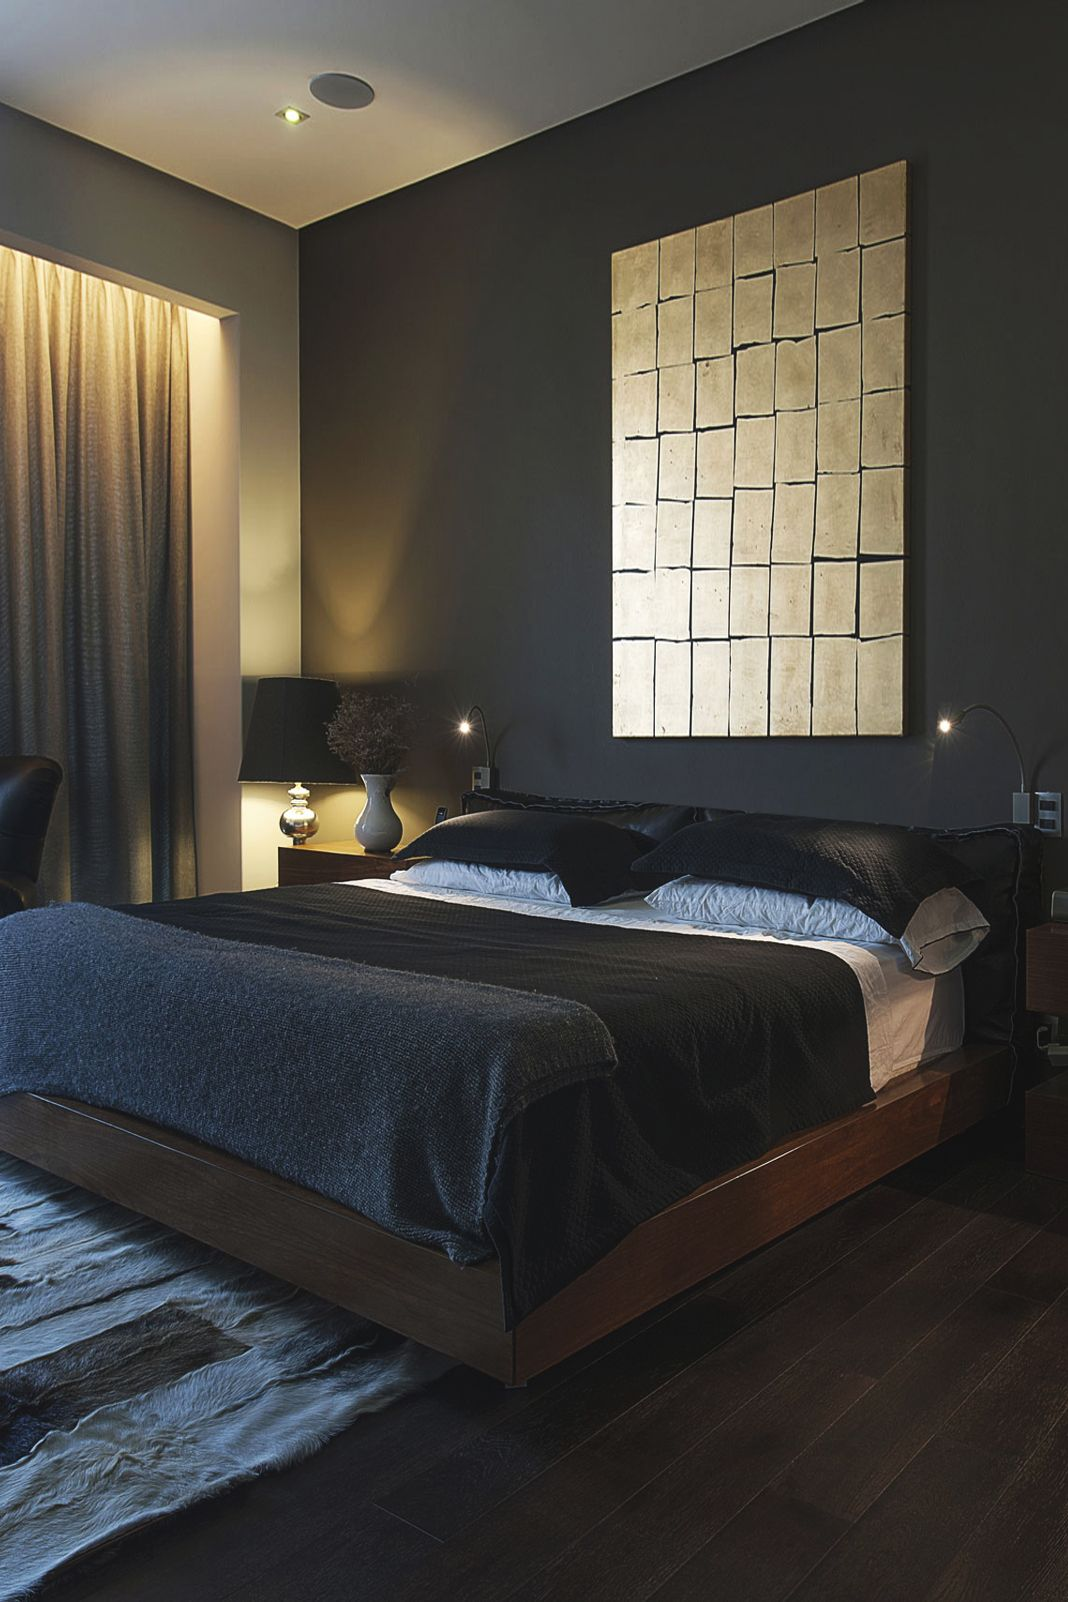 Modern contemporary master bedroom decor  An entry from MR MENCO  Bedrooms Cafes and Studio